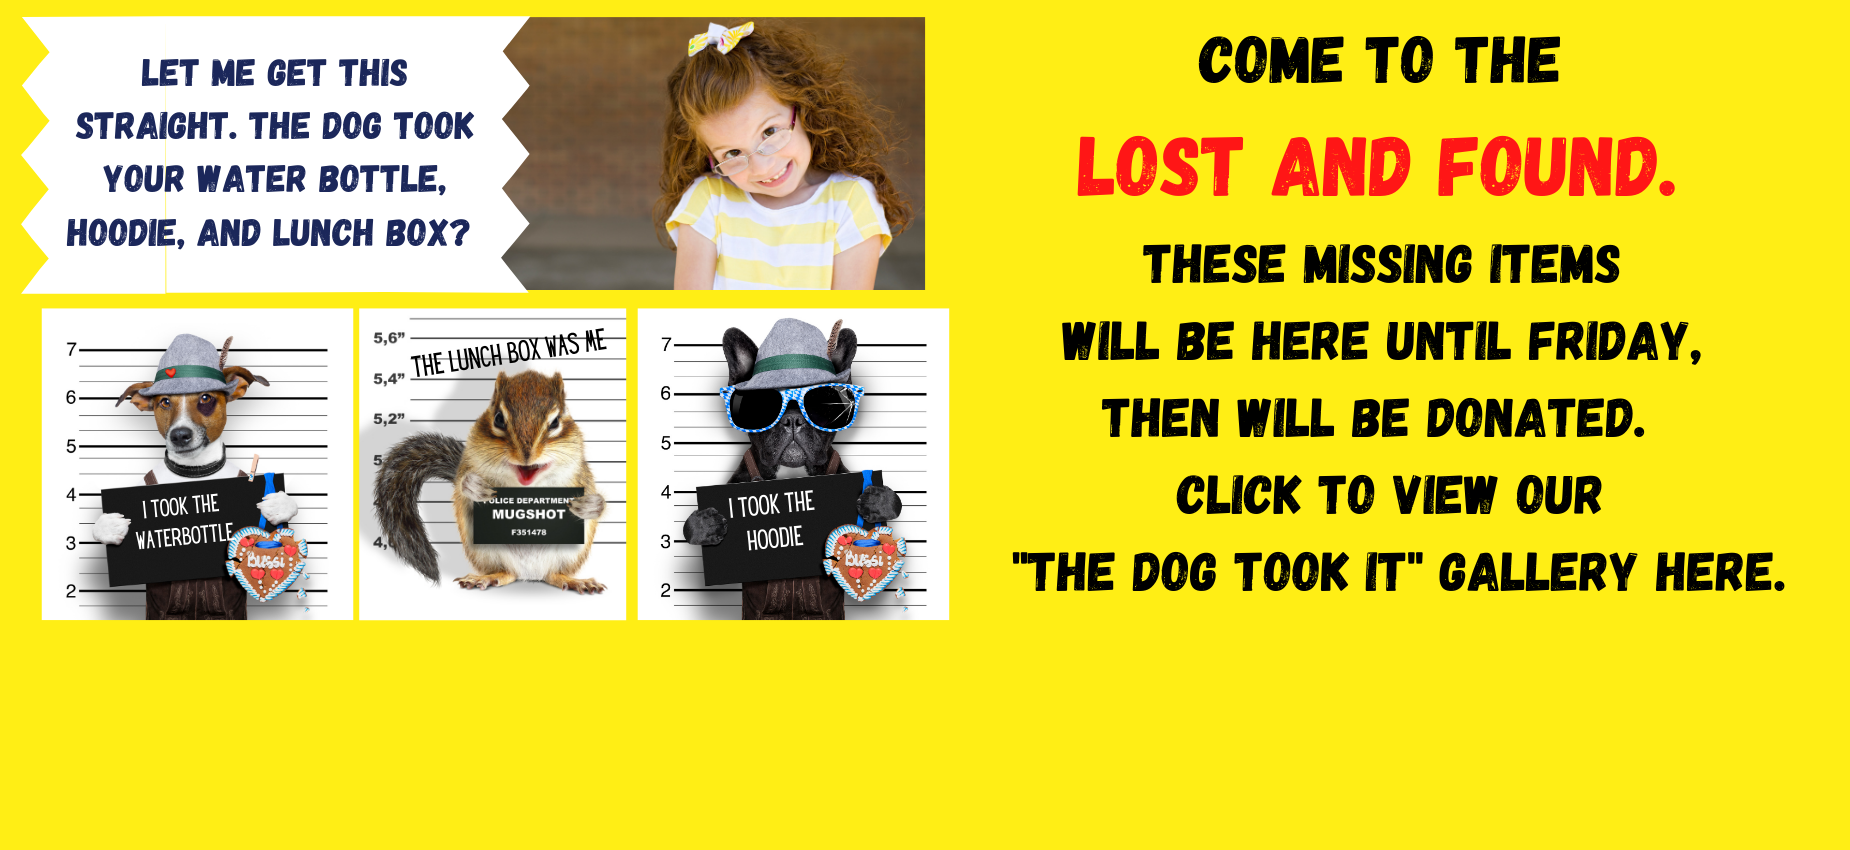 lost and found will be donated Friday, April 9th.